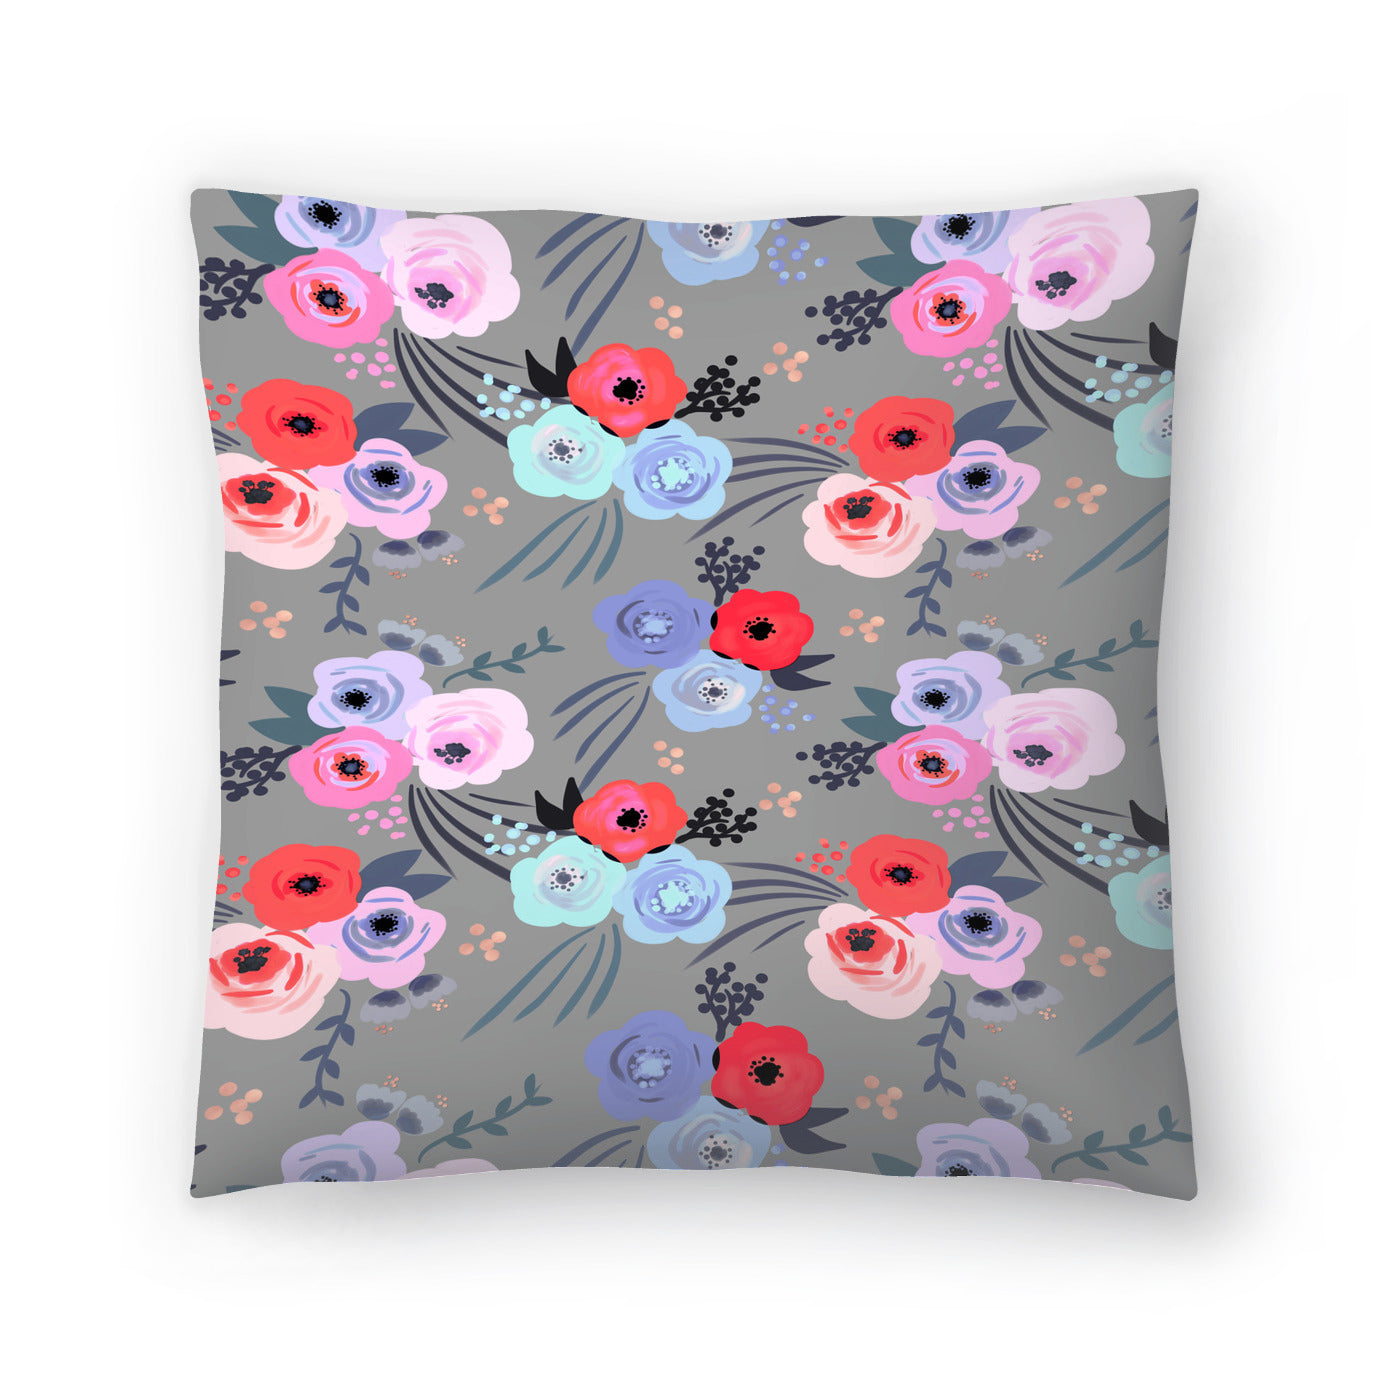 Handmade Garden by Emanuela Carratoni Decorative Pillow - Decorative Pillow - Americanflat